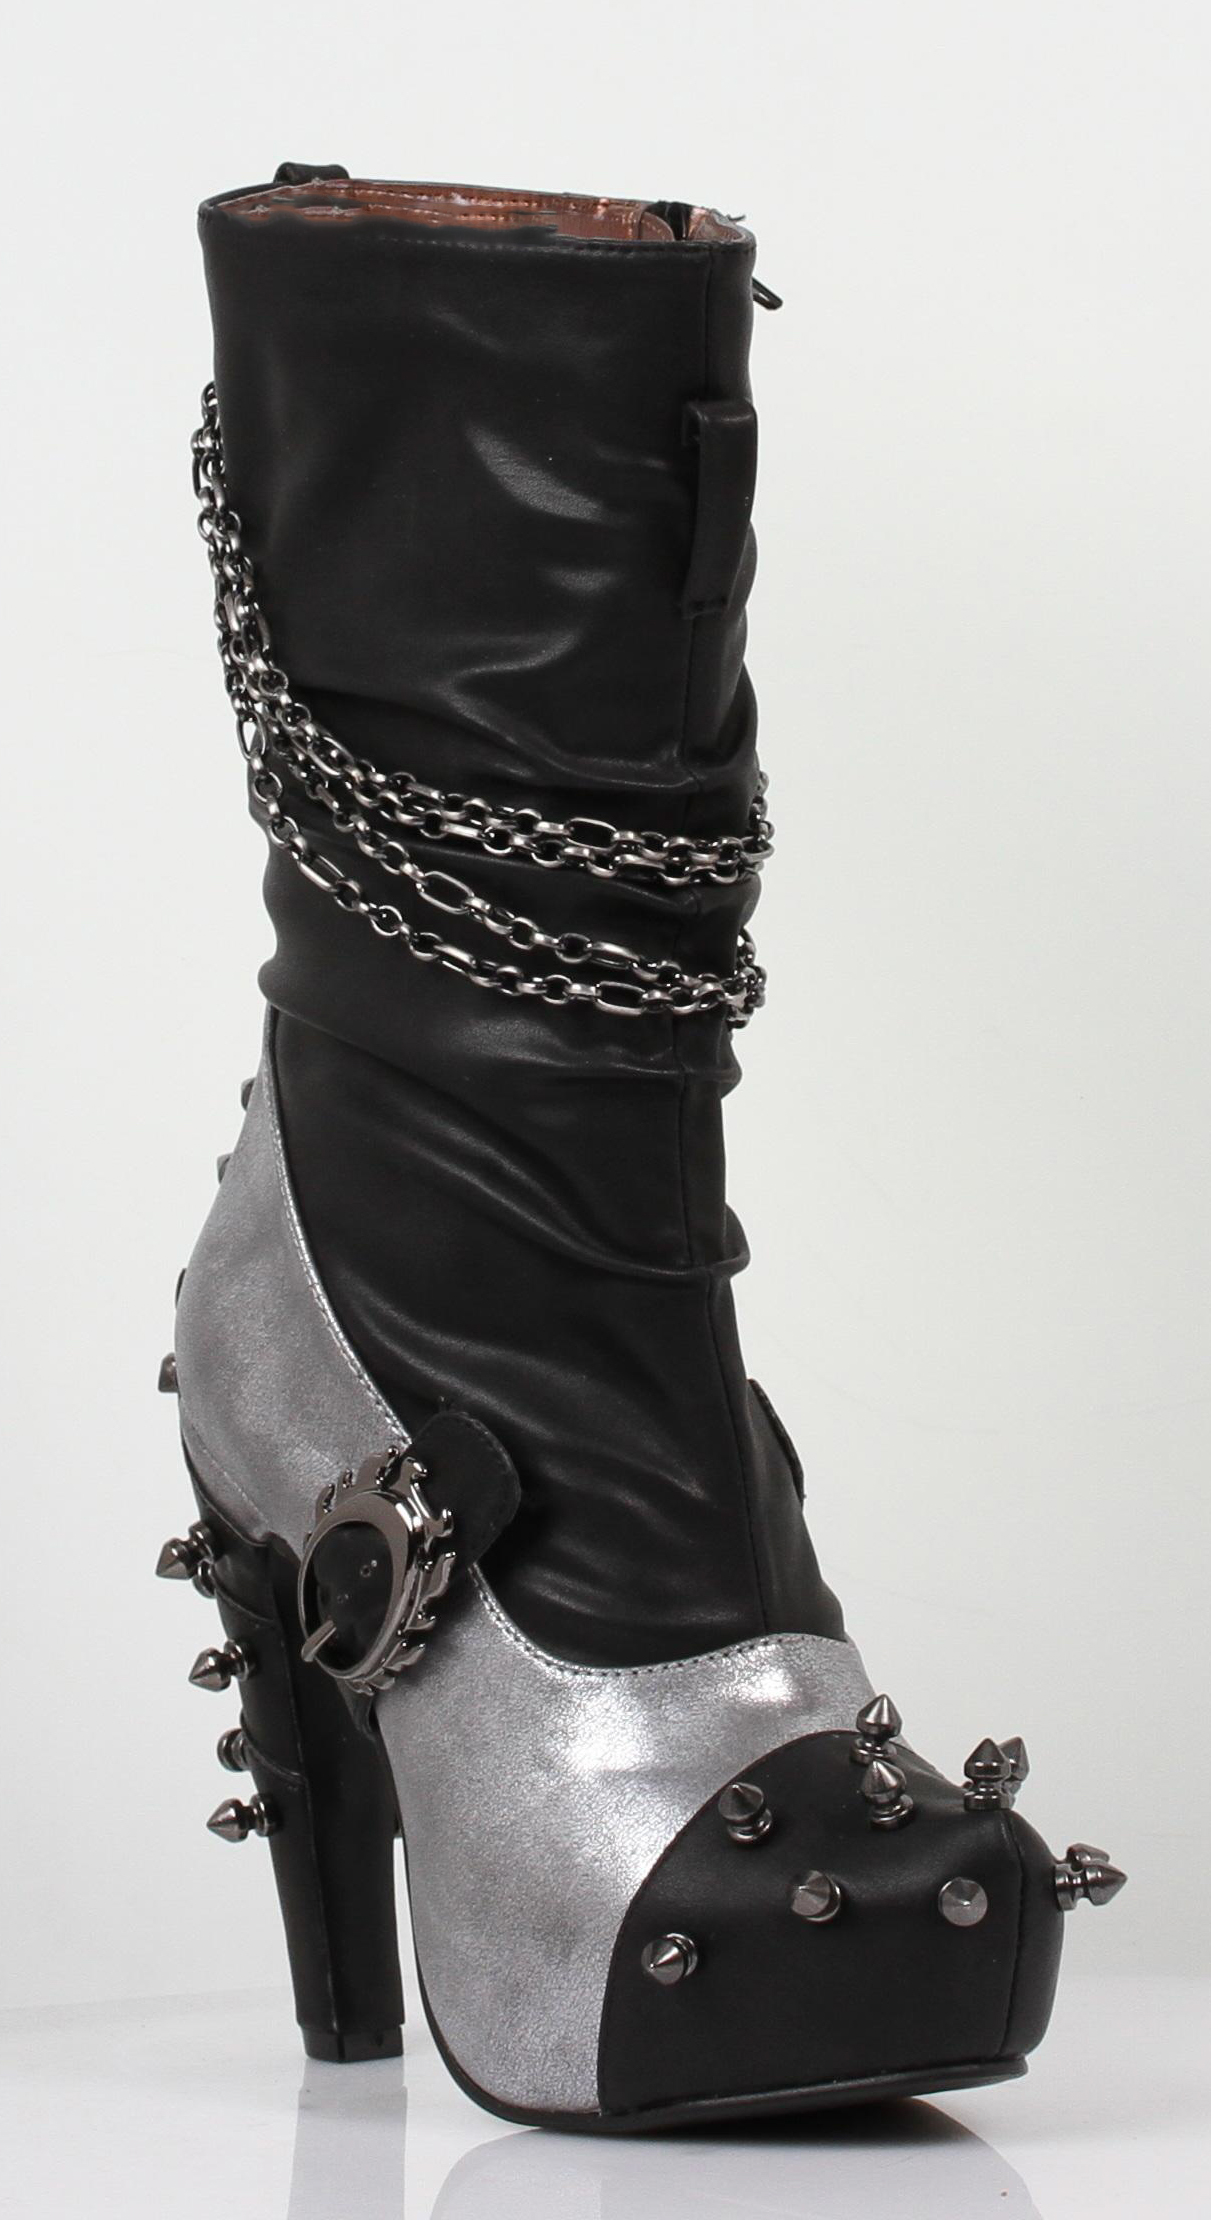 hades_shoes_faline_silver_steampunk_booties_booties_4.jpg